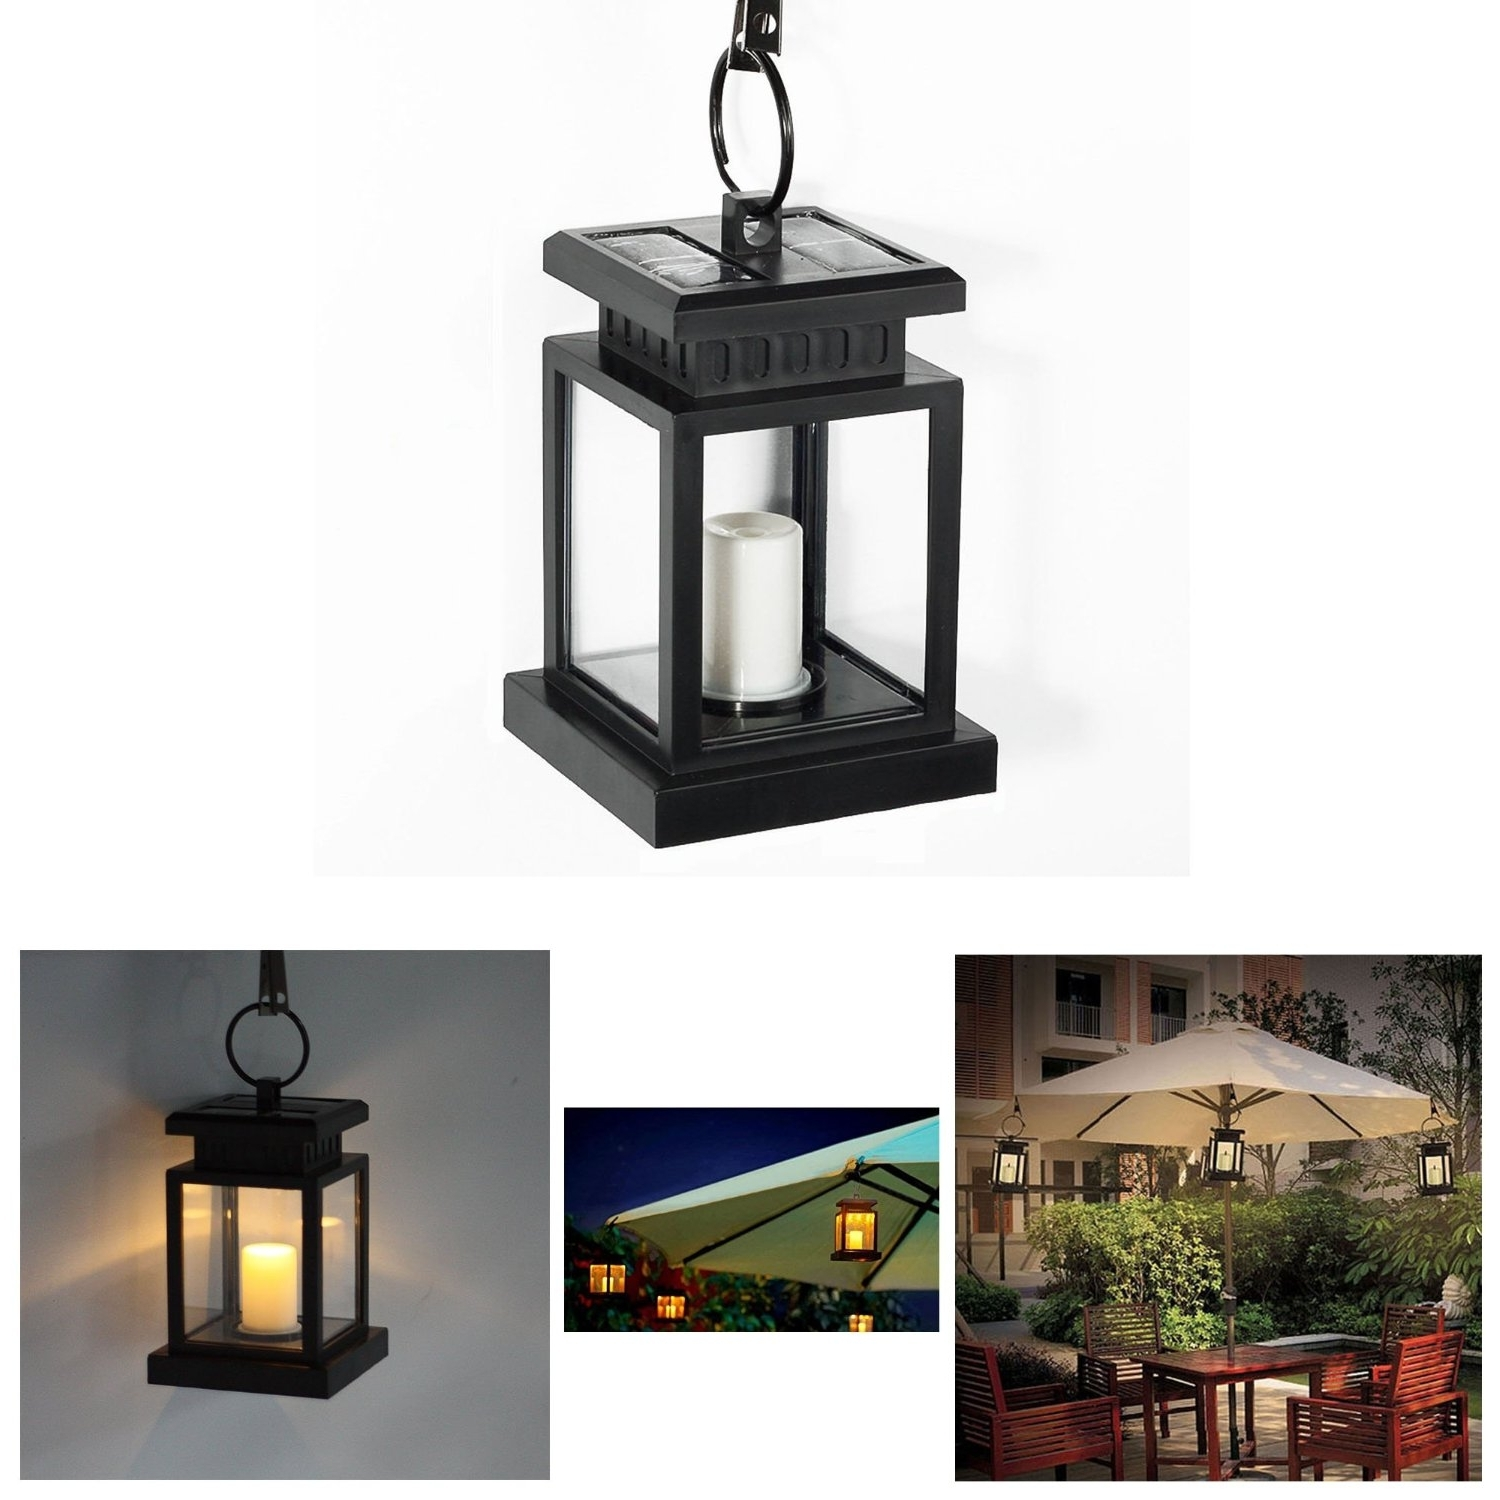 Outdoor Hanging Lanterns For Candles Within Well Liked Hanging Outdoor Lanterns For Candles – Image Antique And Candle (Gallery 6 of 20)